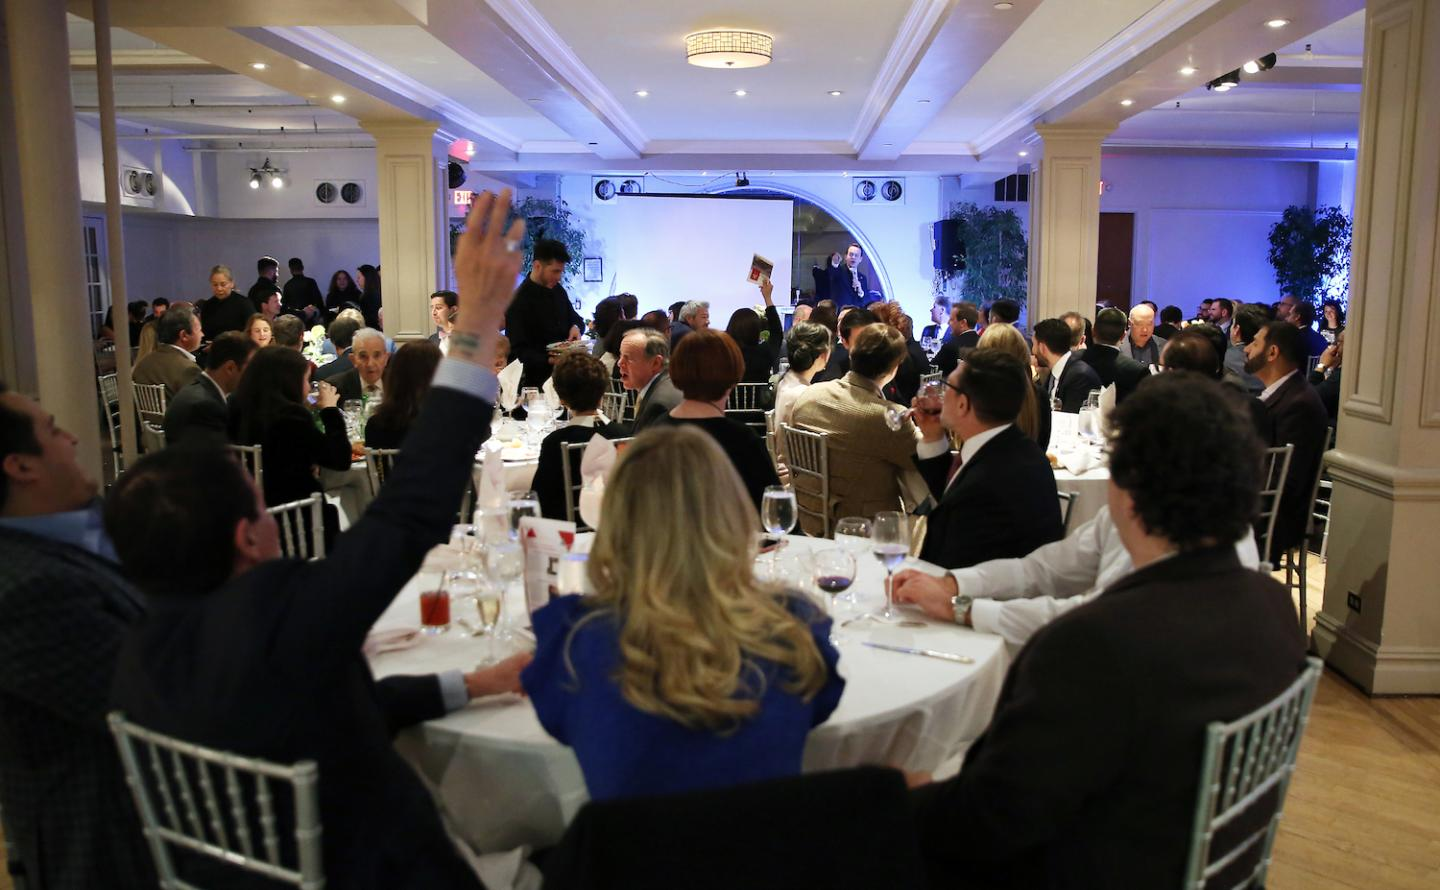 The Society regularly organises galas with charitable auctions.